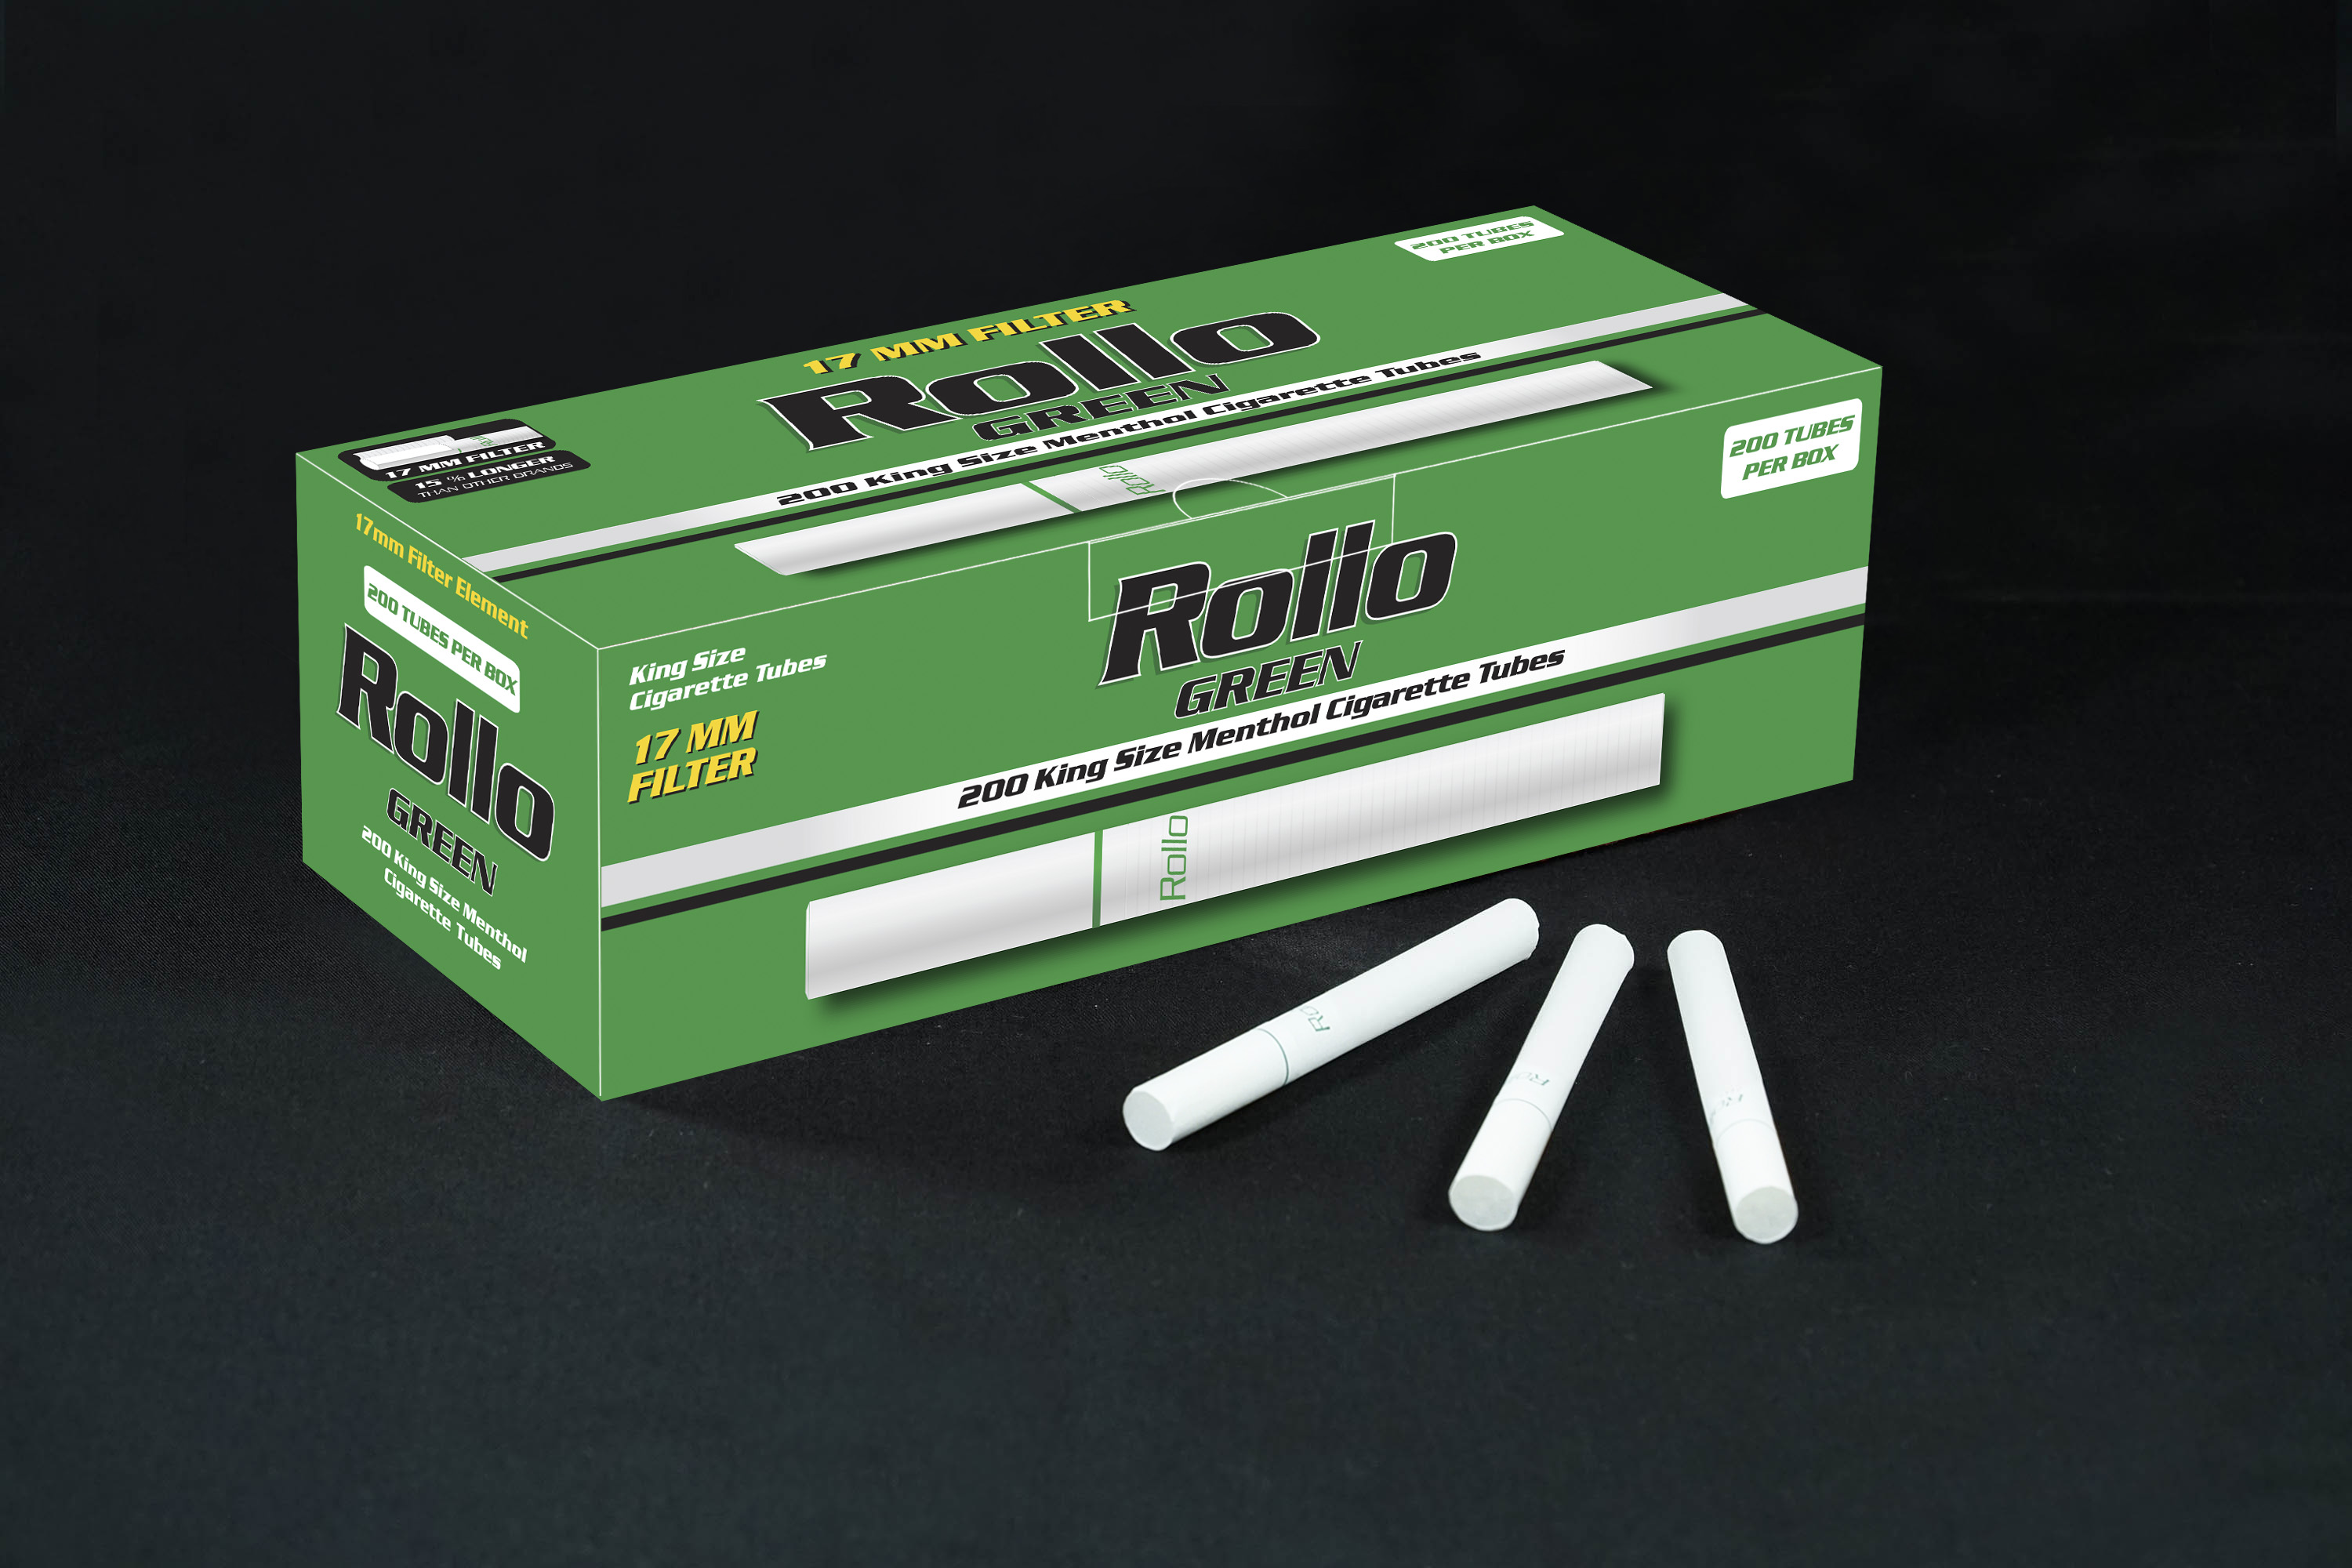 Menthol Cigarette Tubes Rollo Green 200 CT 17mm filter length